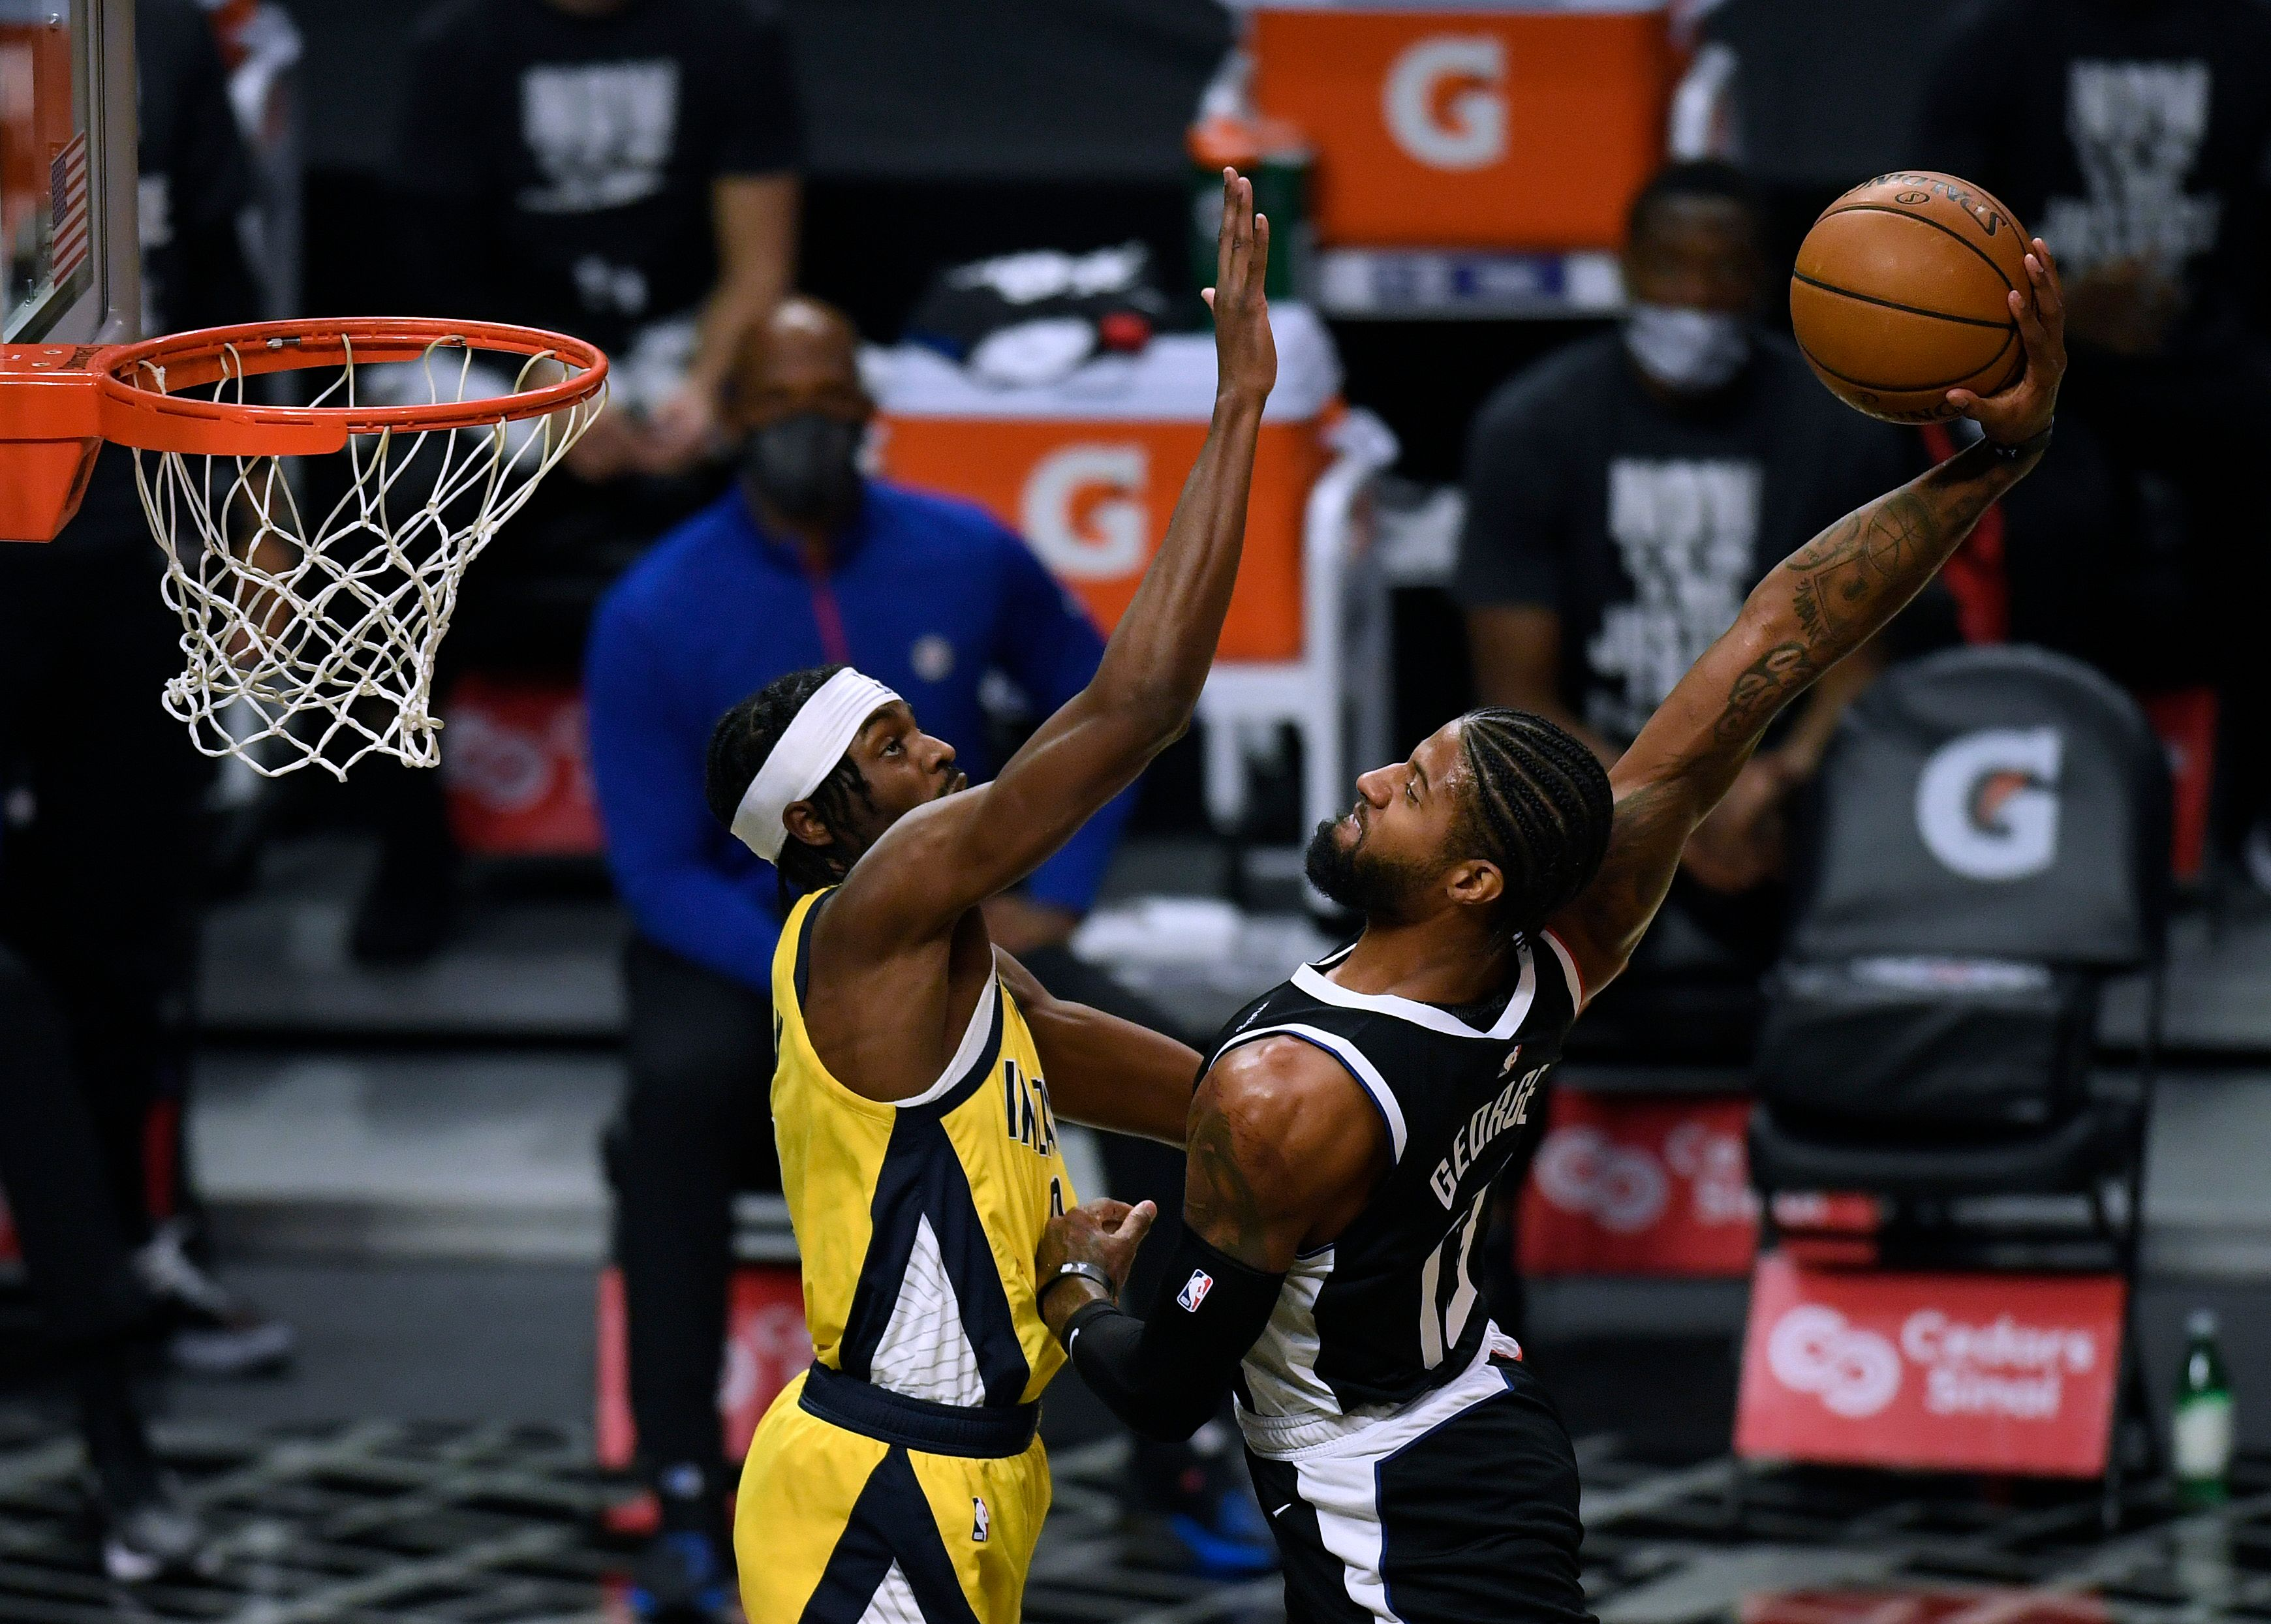 Paul George dunking the ball